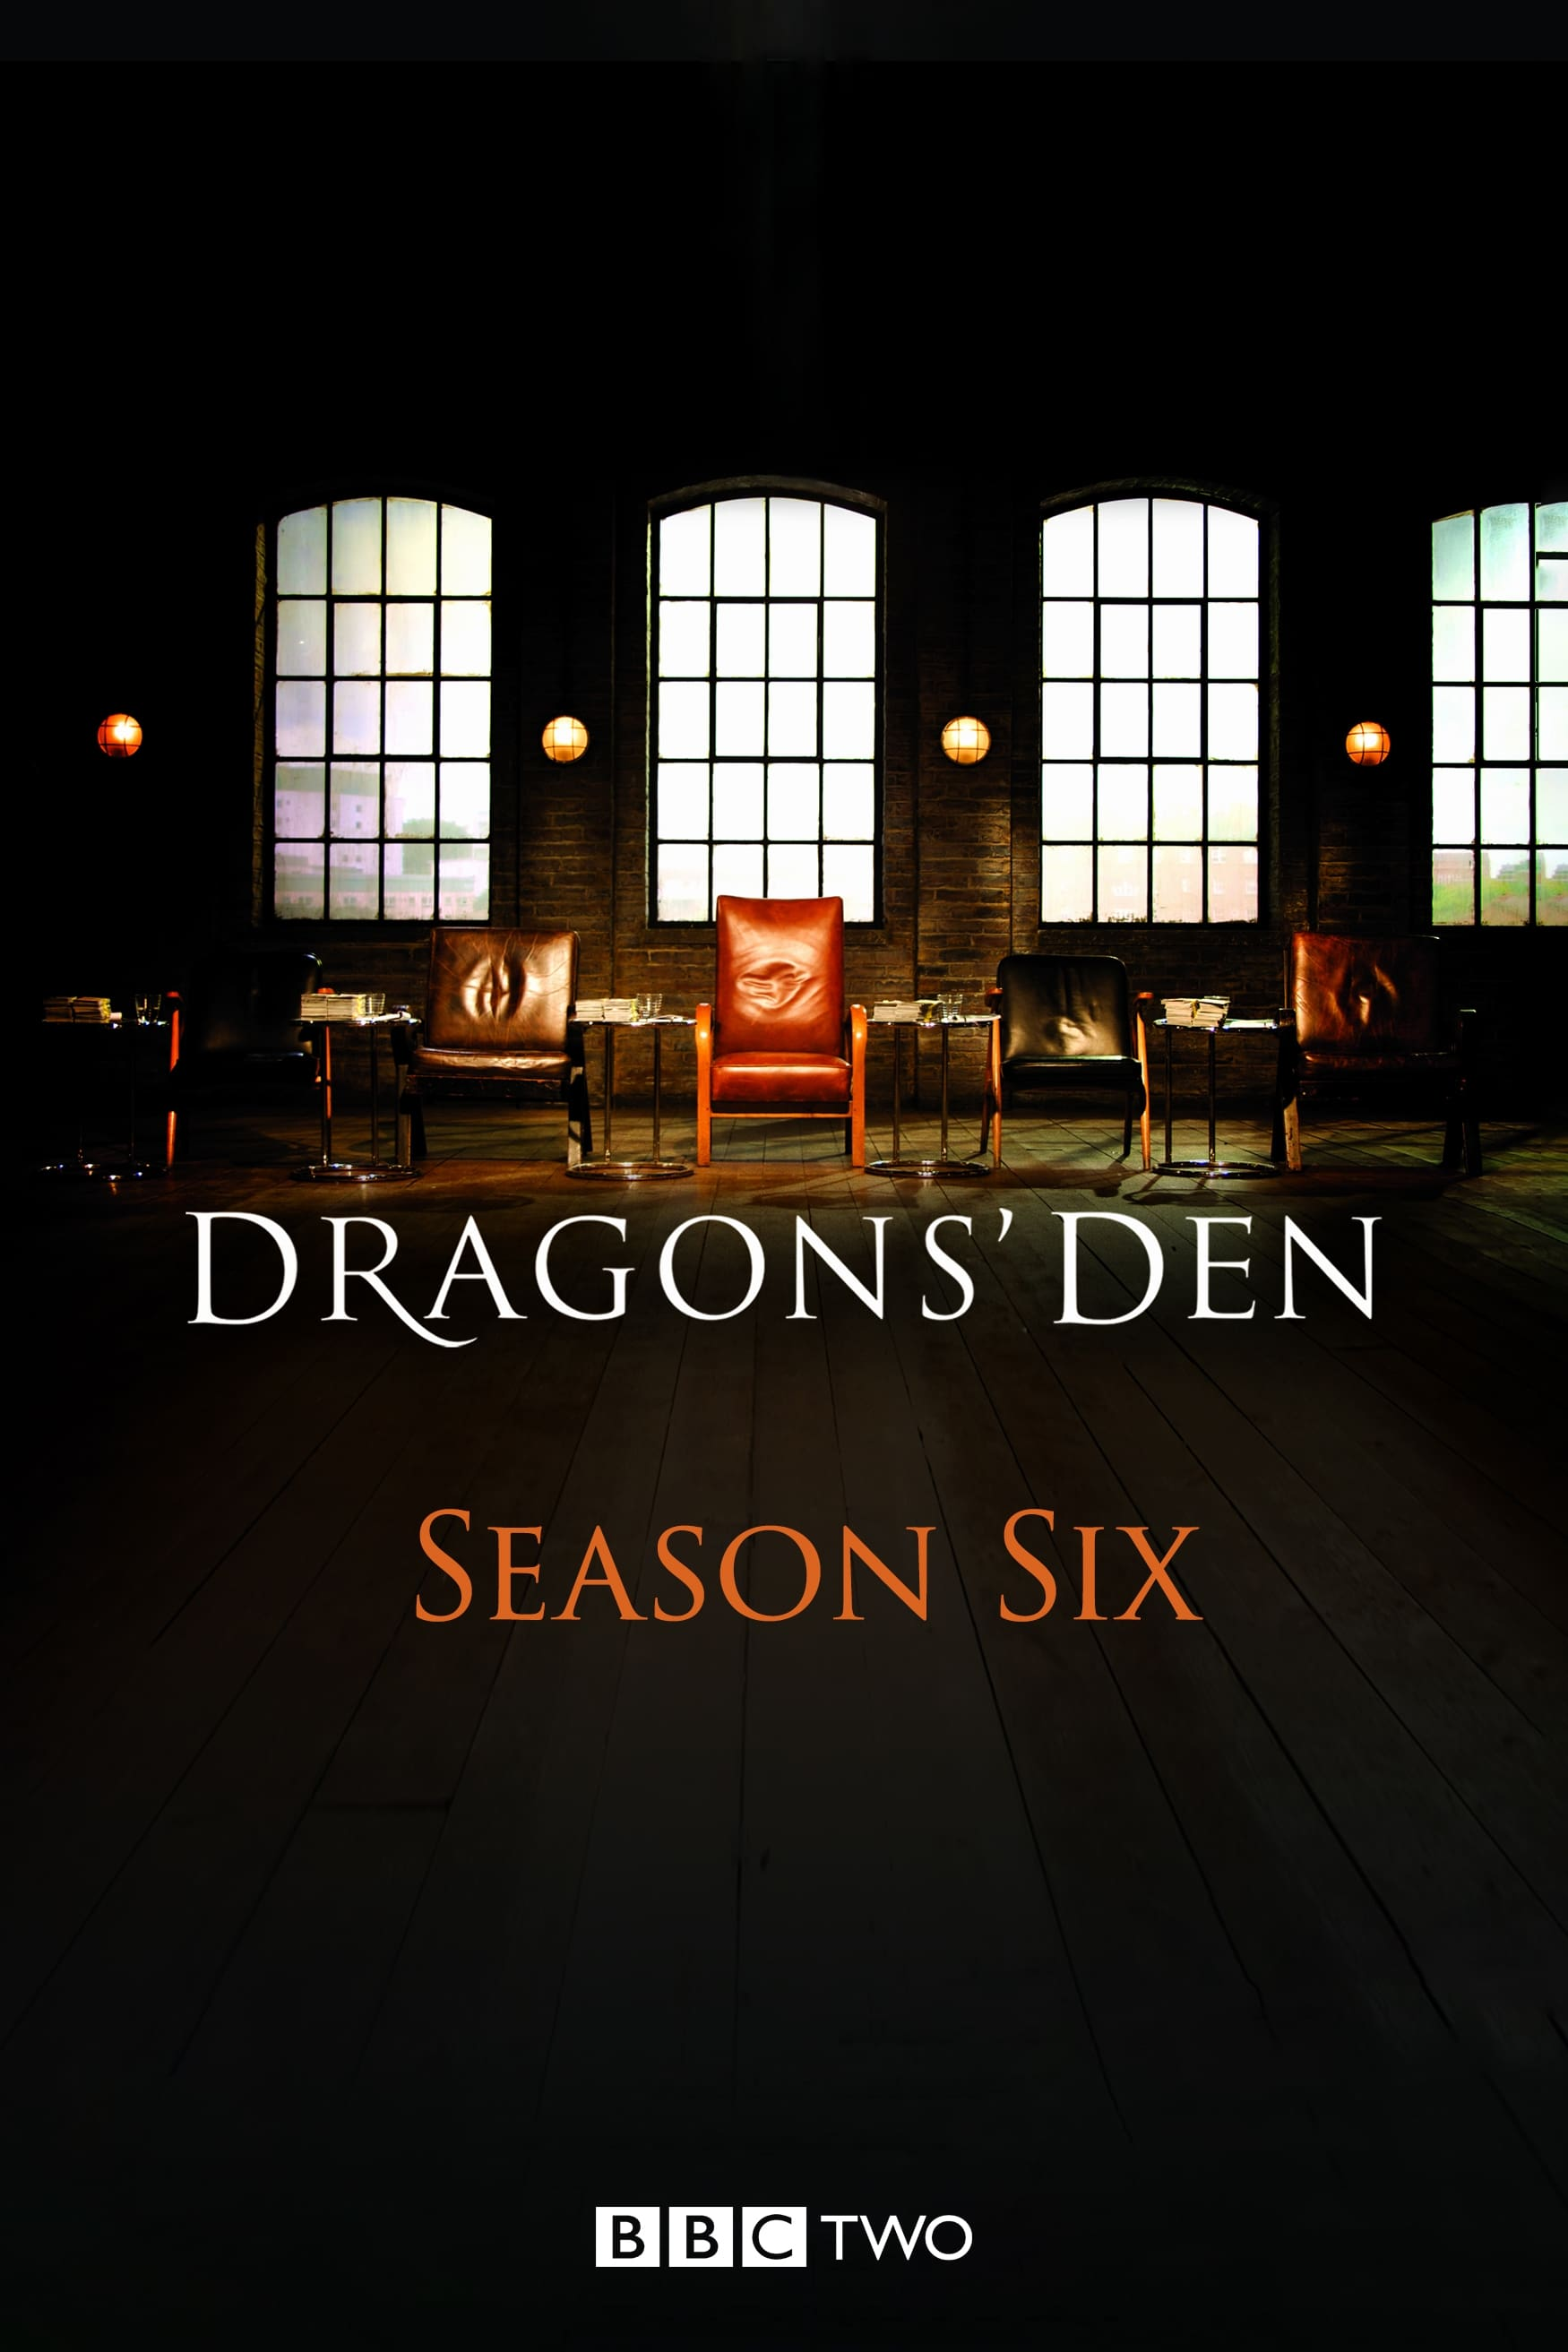 Dragons' Den Season 6